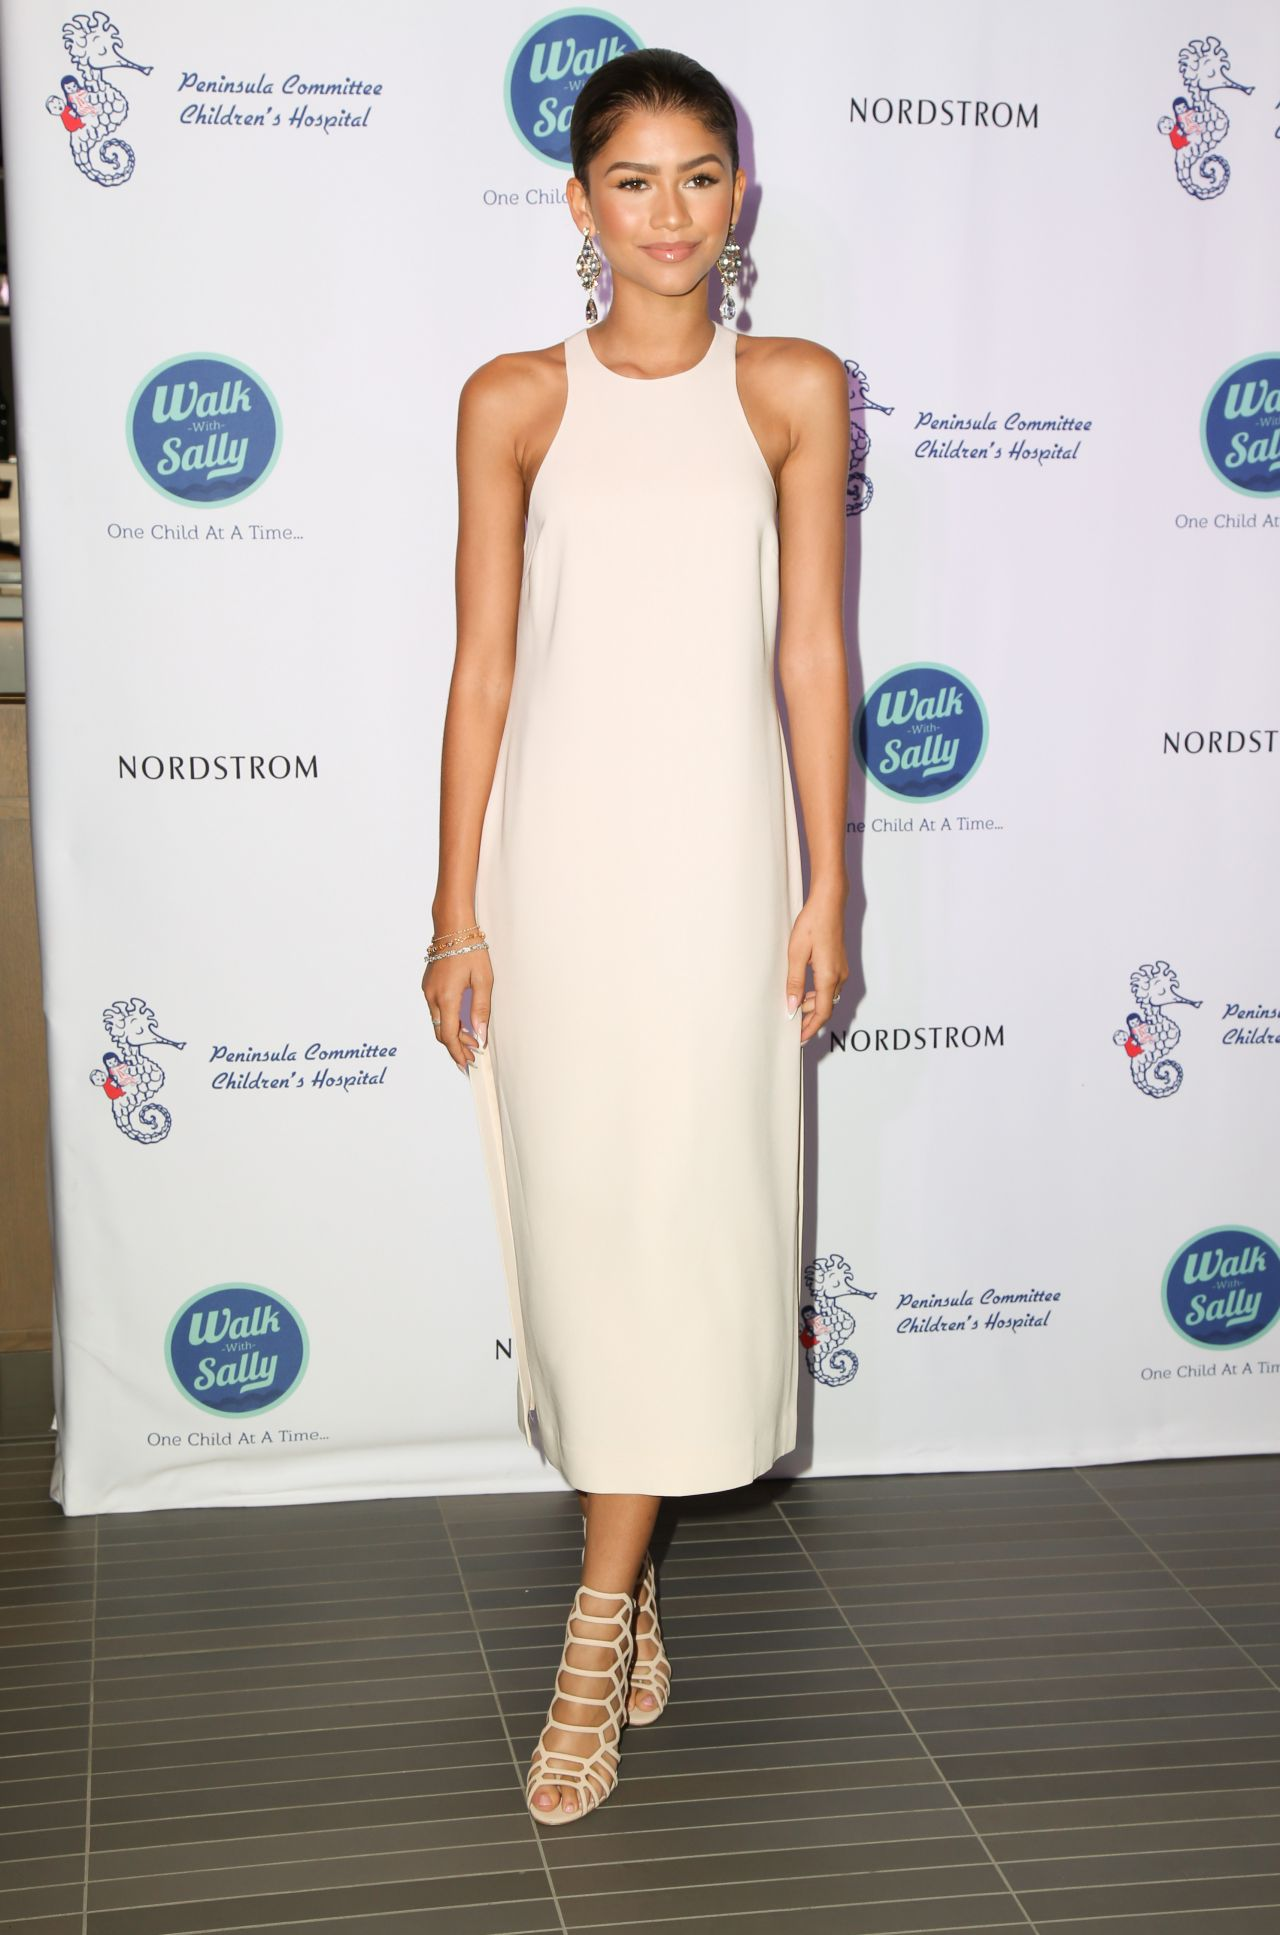 Zendaya - Nordstrom Del Amo Fashion Center Store Opening Gala, October 2015